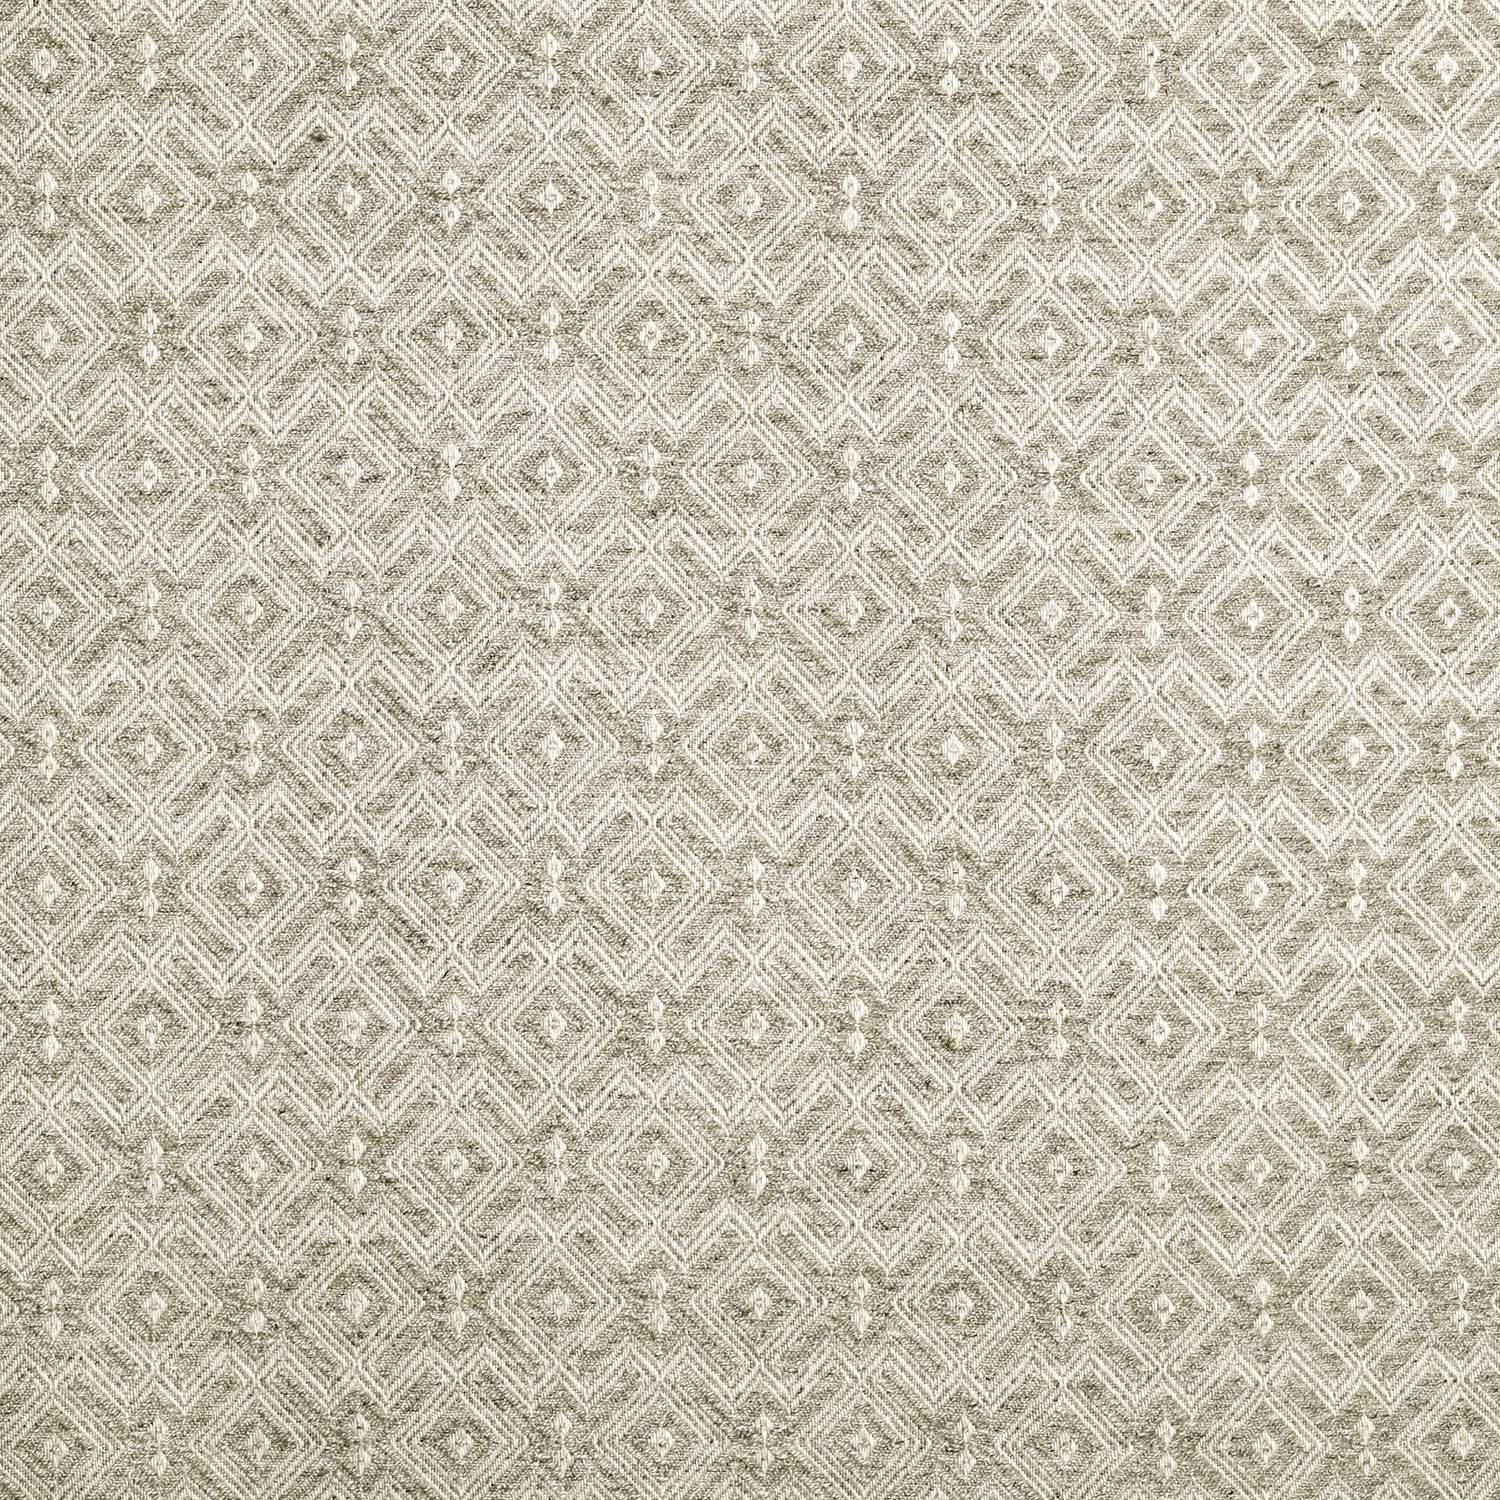 <p><strong>AMESBURY</strong>natural/white 1310-03<a href=/the-winthorp-collection/amersbury-natural-white1310-03>More →</a></p>